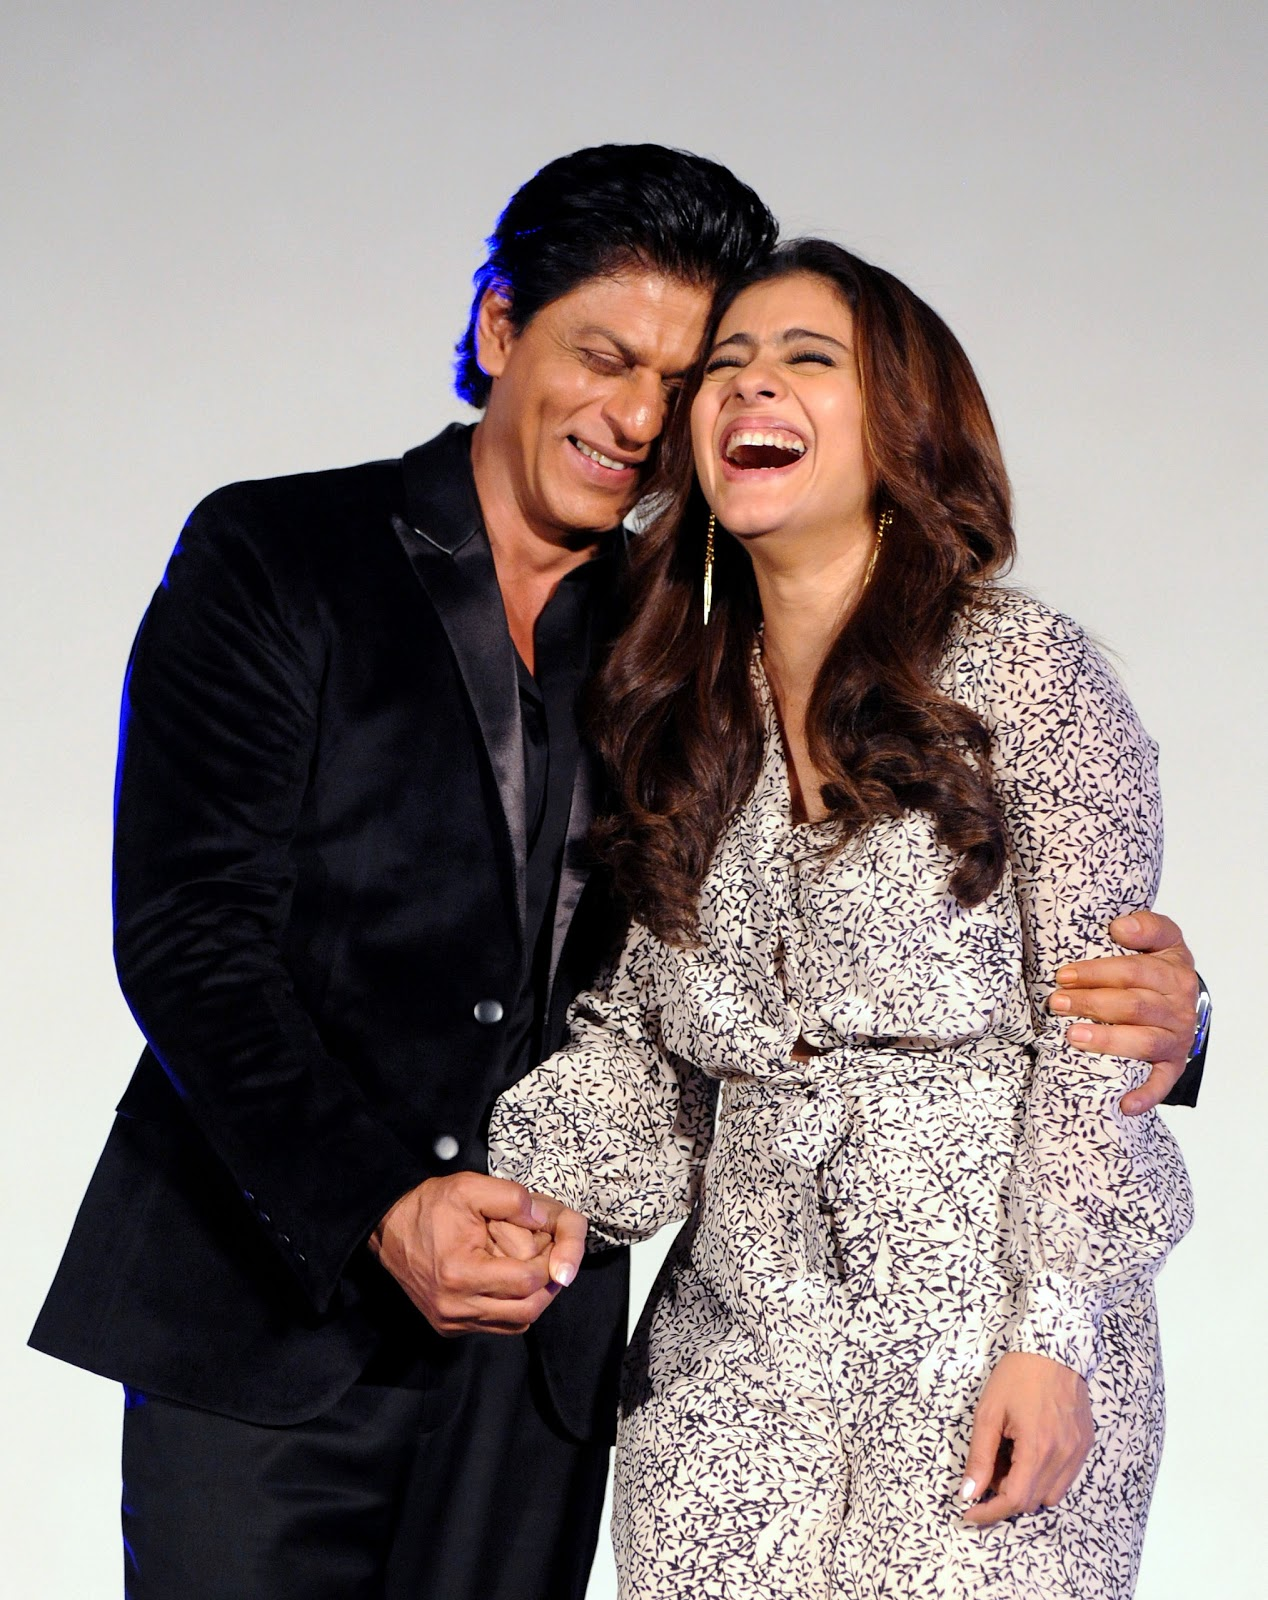 Bollywood's Hottest couple Shah Rukh Khan & Kajol Devgn at 'Dilwale' launching ceremony